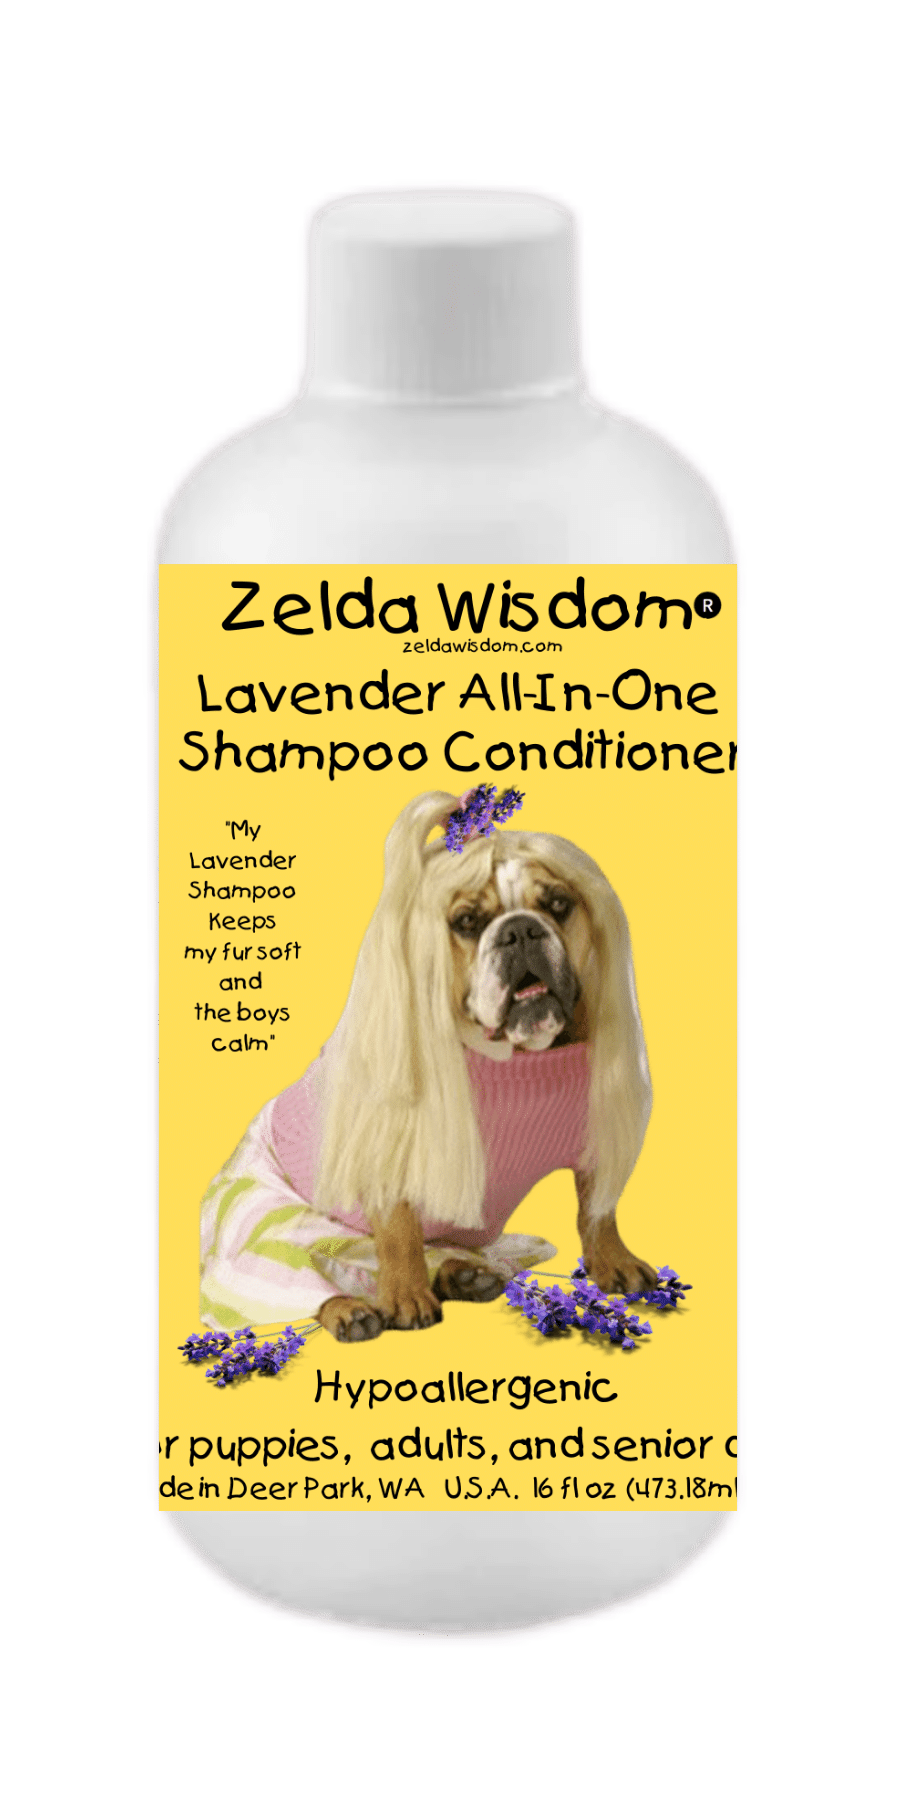 Shampoo Conditioner Lavender Hypoallergenic All-In-One  for Puppies, Adults, and Senior Dogs